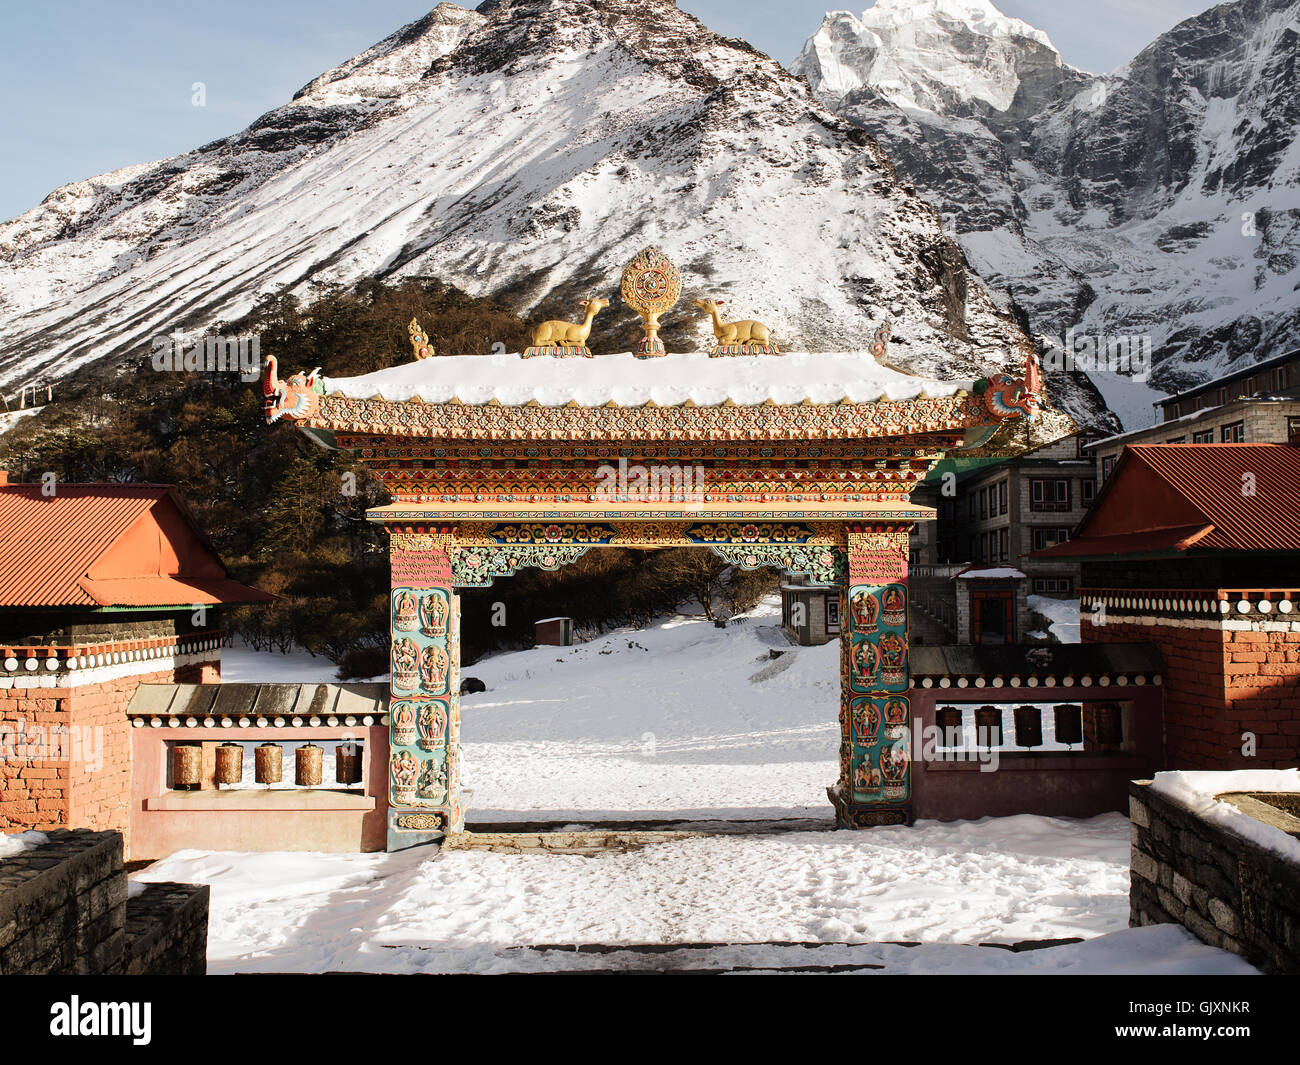 The gateway to Tengboche Monastery in Nepal's Everest Base Camp - Stock Image